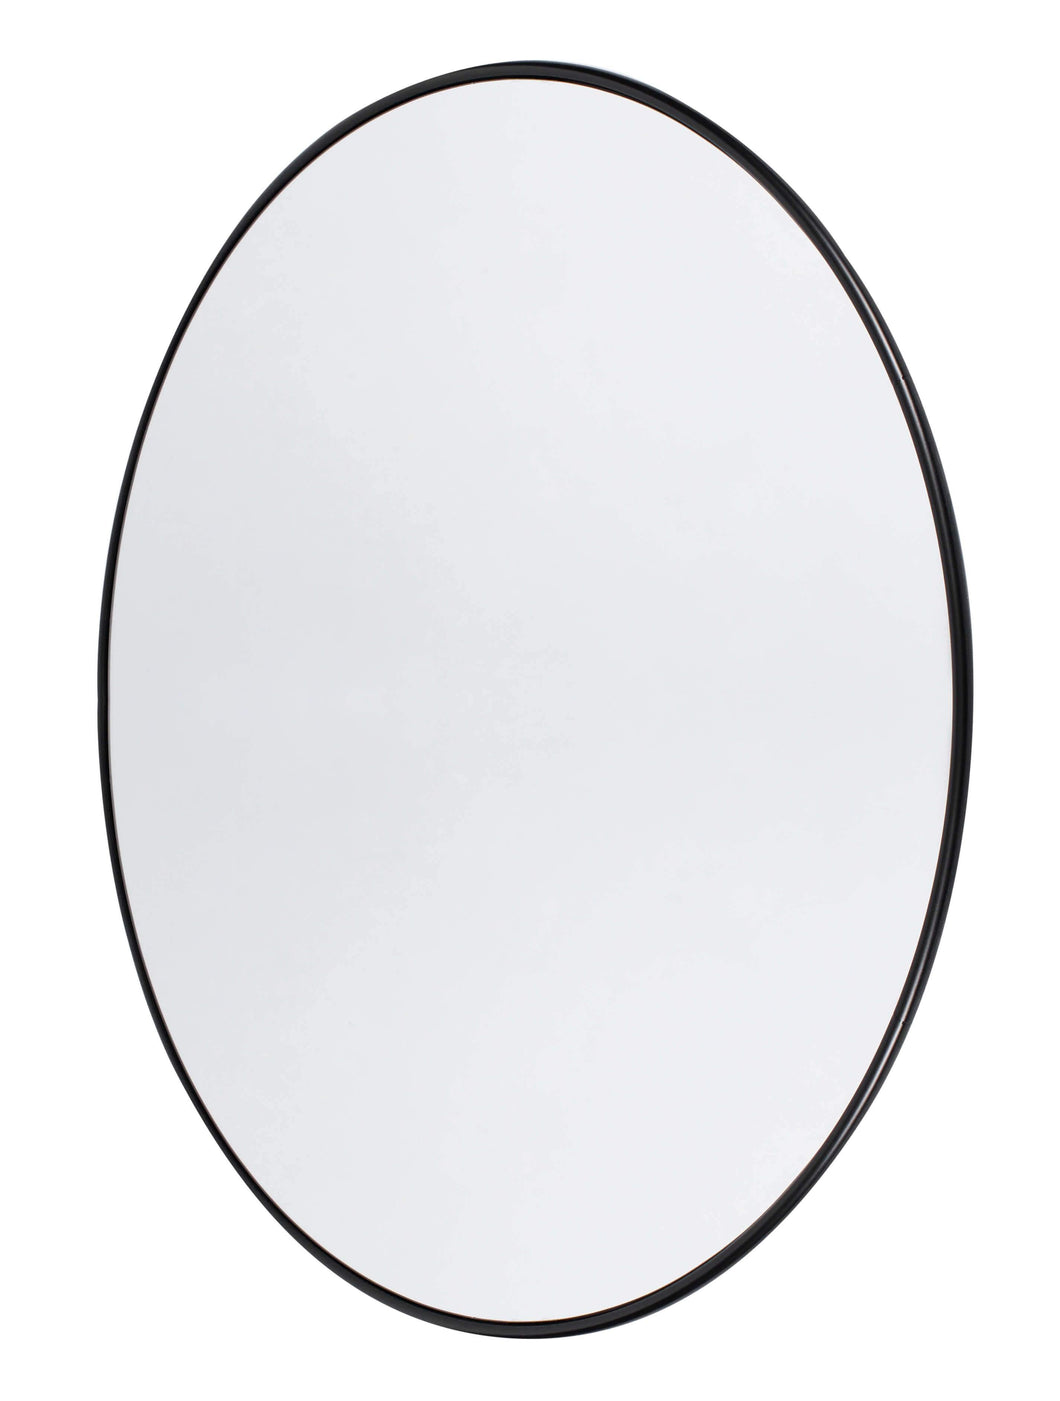 Wall mirror round Copenhagen, Black